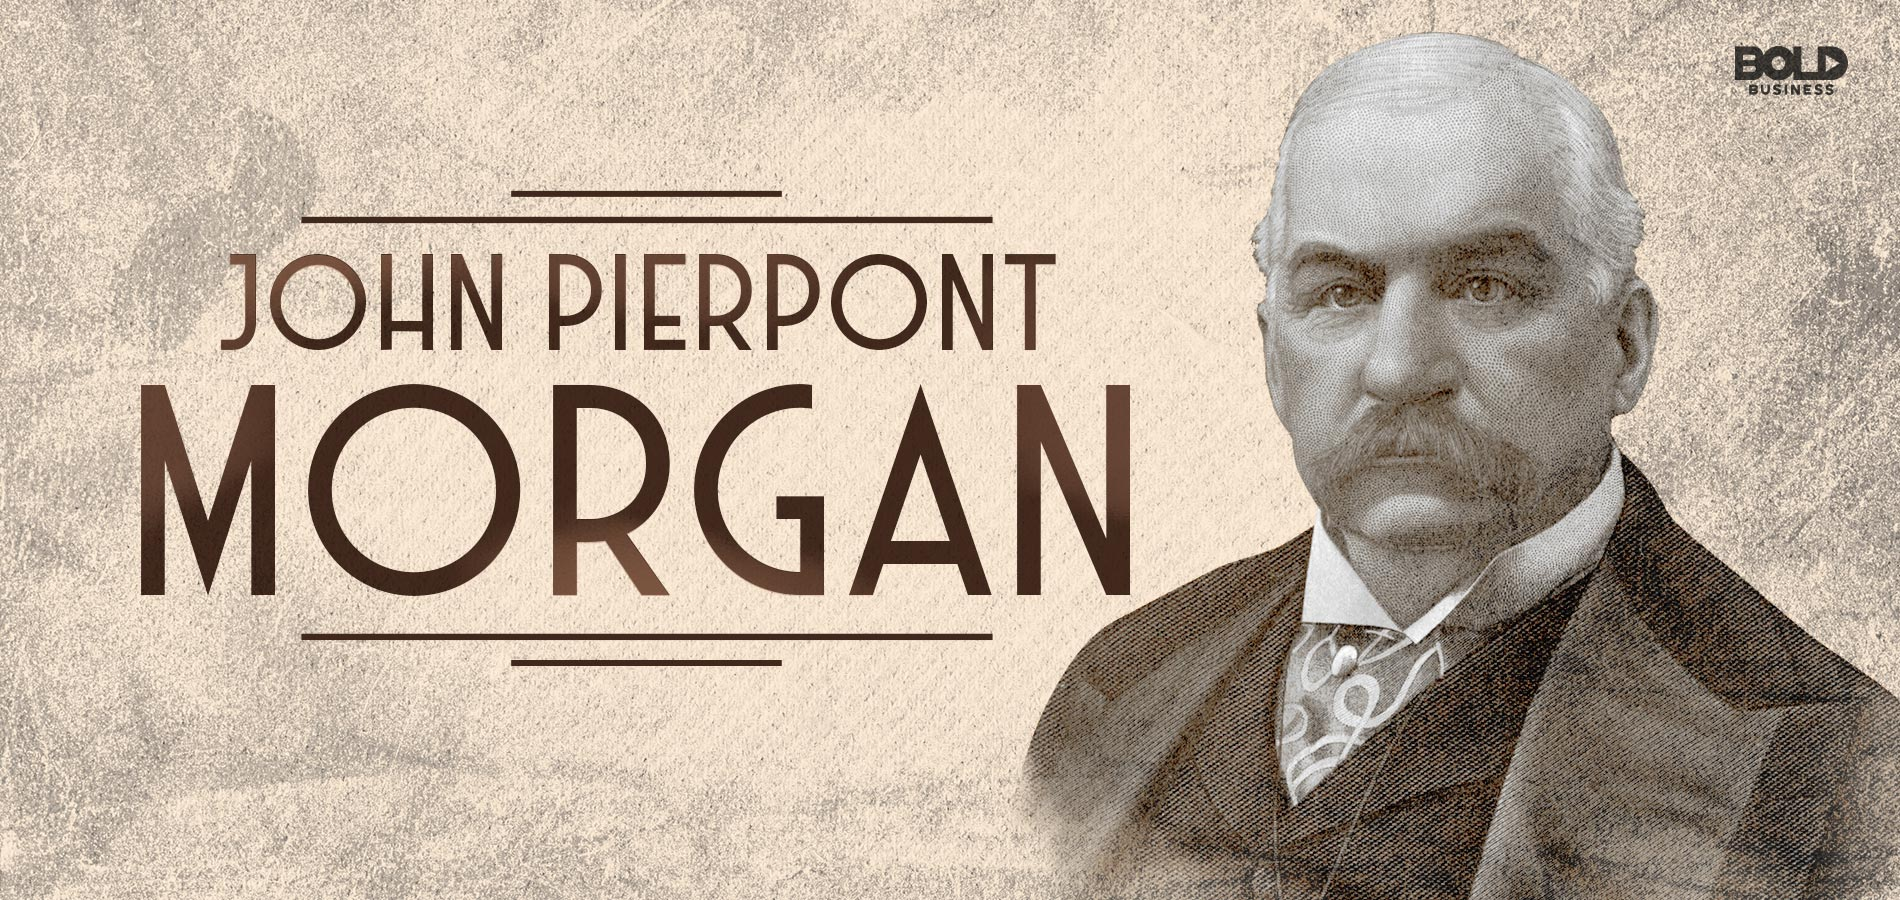 Bold Leadership Of John Pierpont Morgan Anchored On Courage